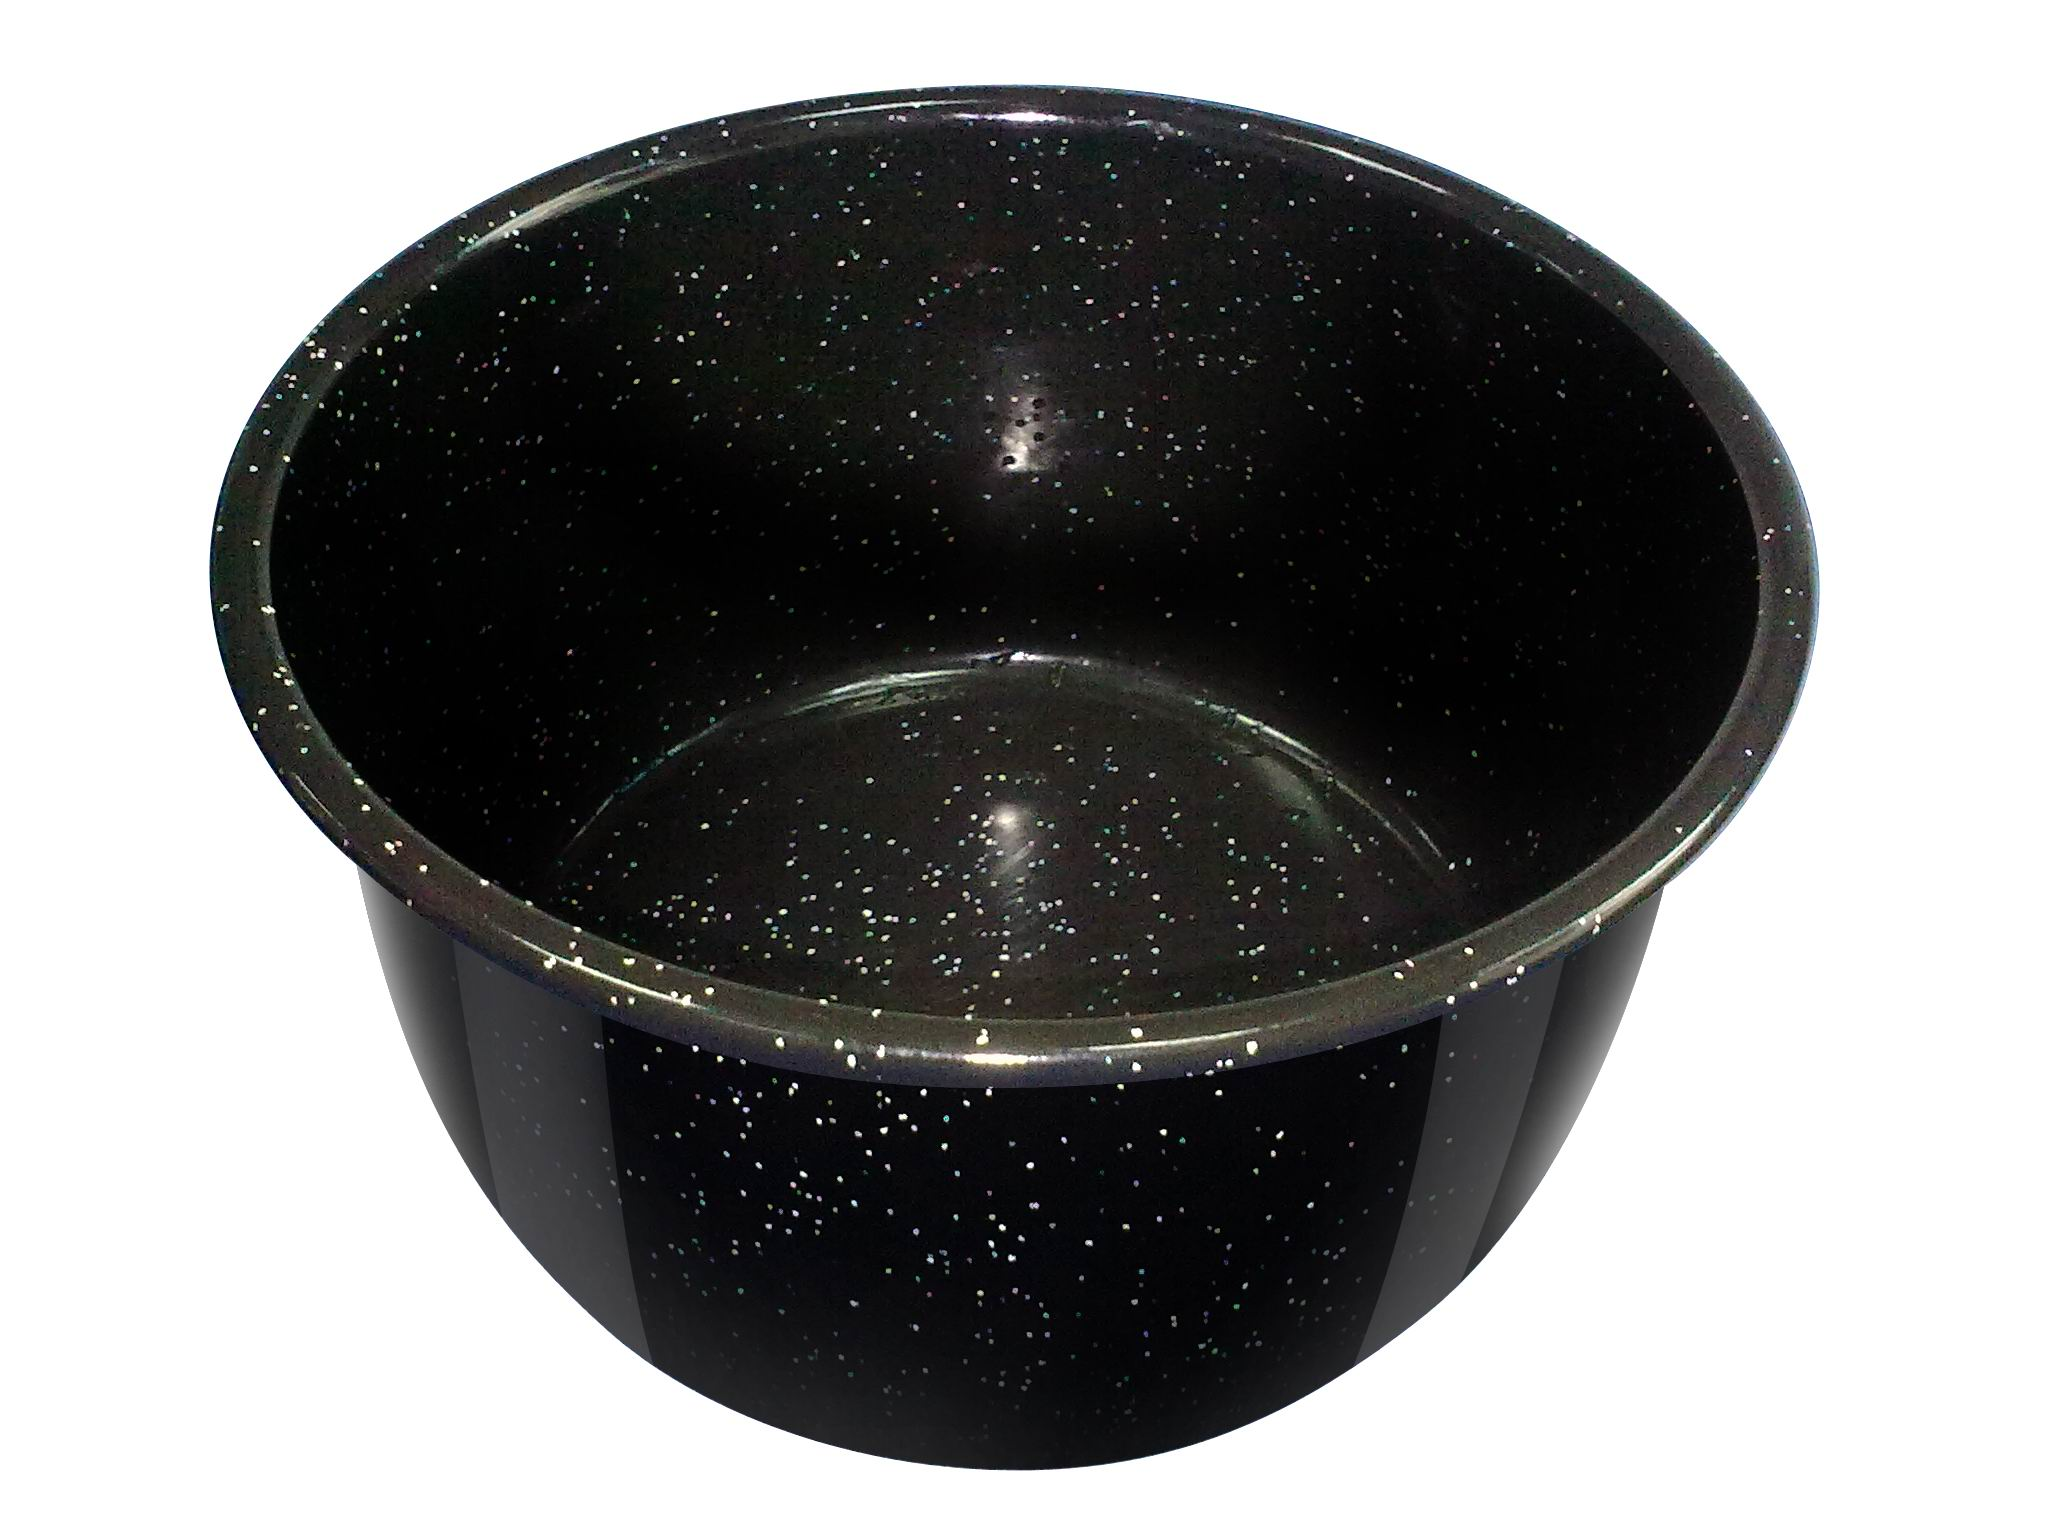 6L 6 quart RTS ceramic inner pot for SKD CKD rice cooker of electric pressure cooker hands fell is heavy suit for cooker